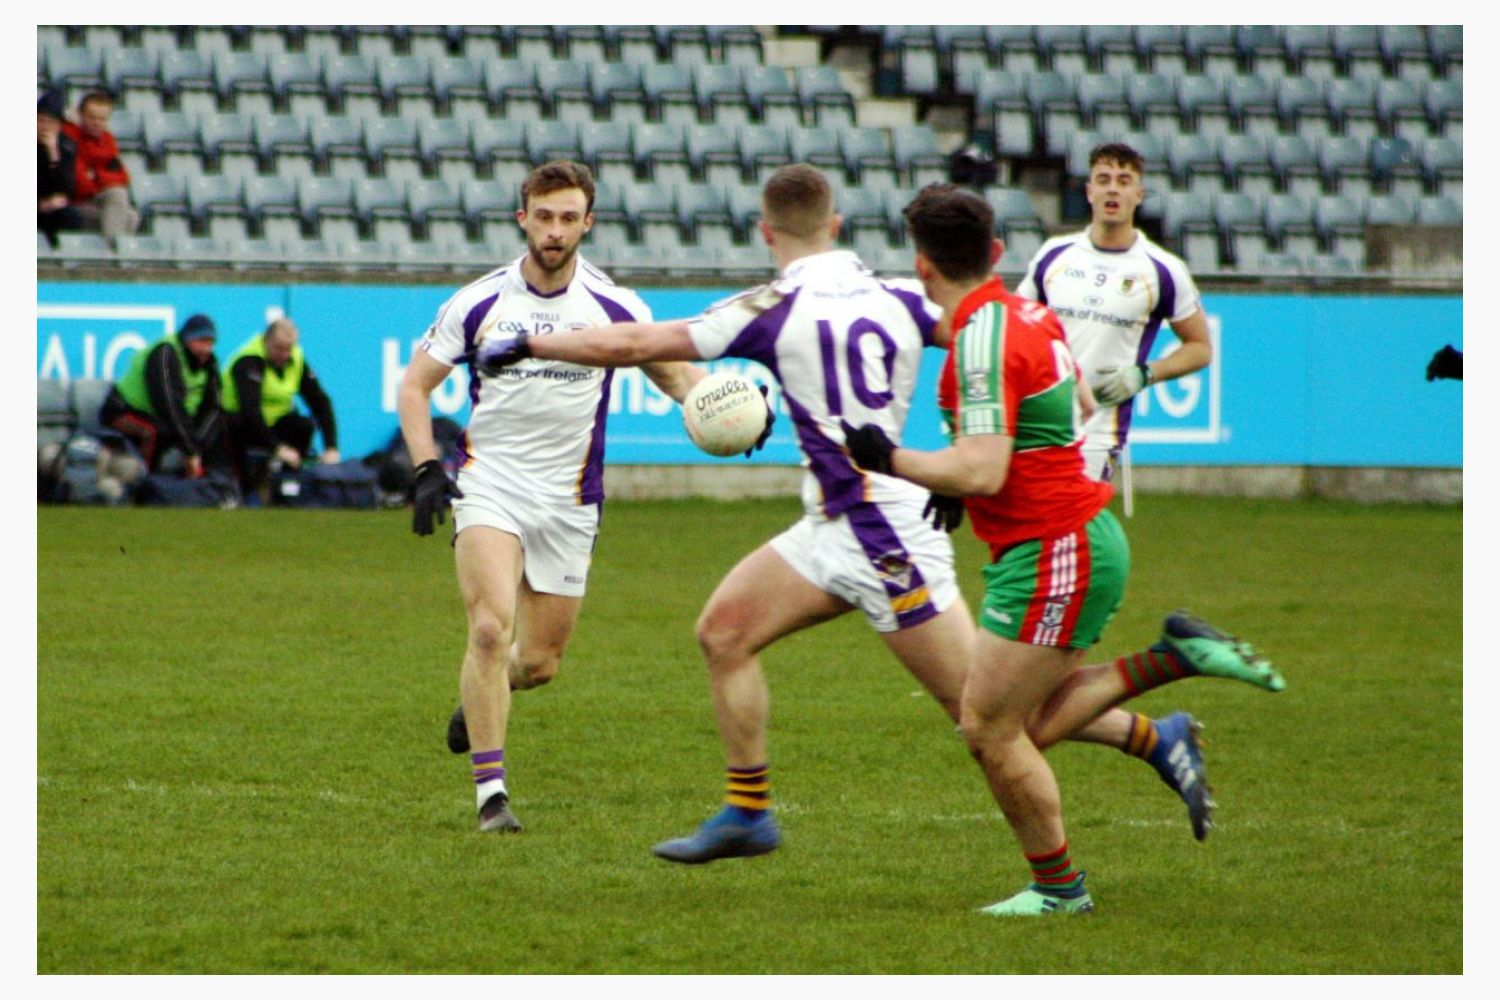 KC Crokes V Ballymun - Match Reports and Photographs